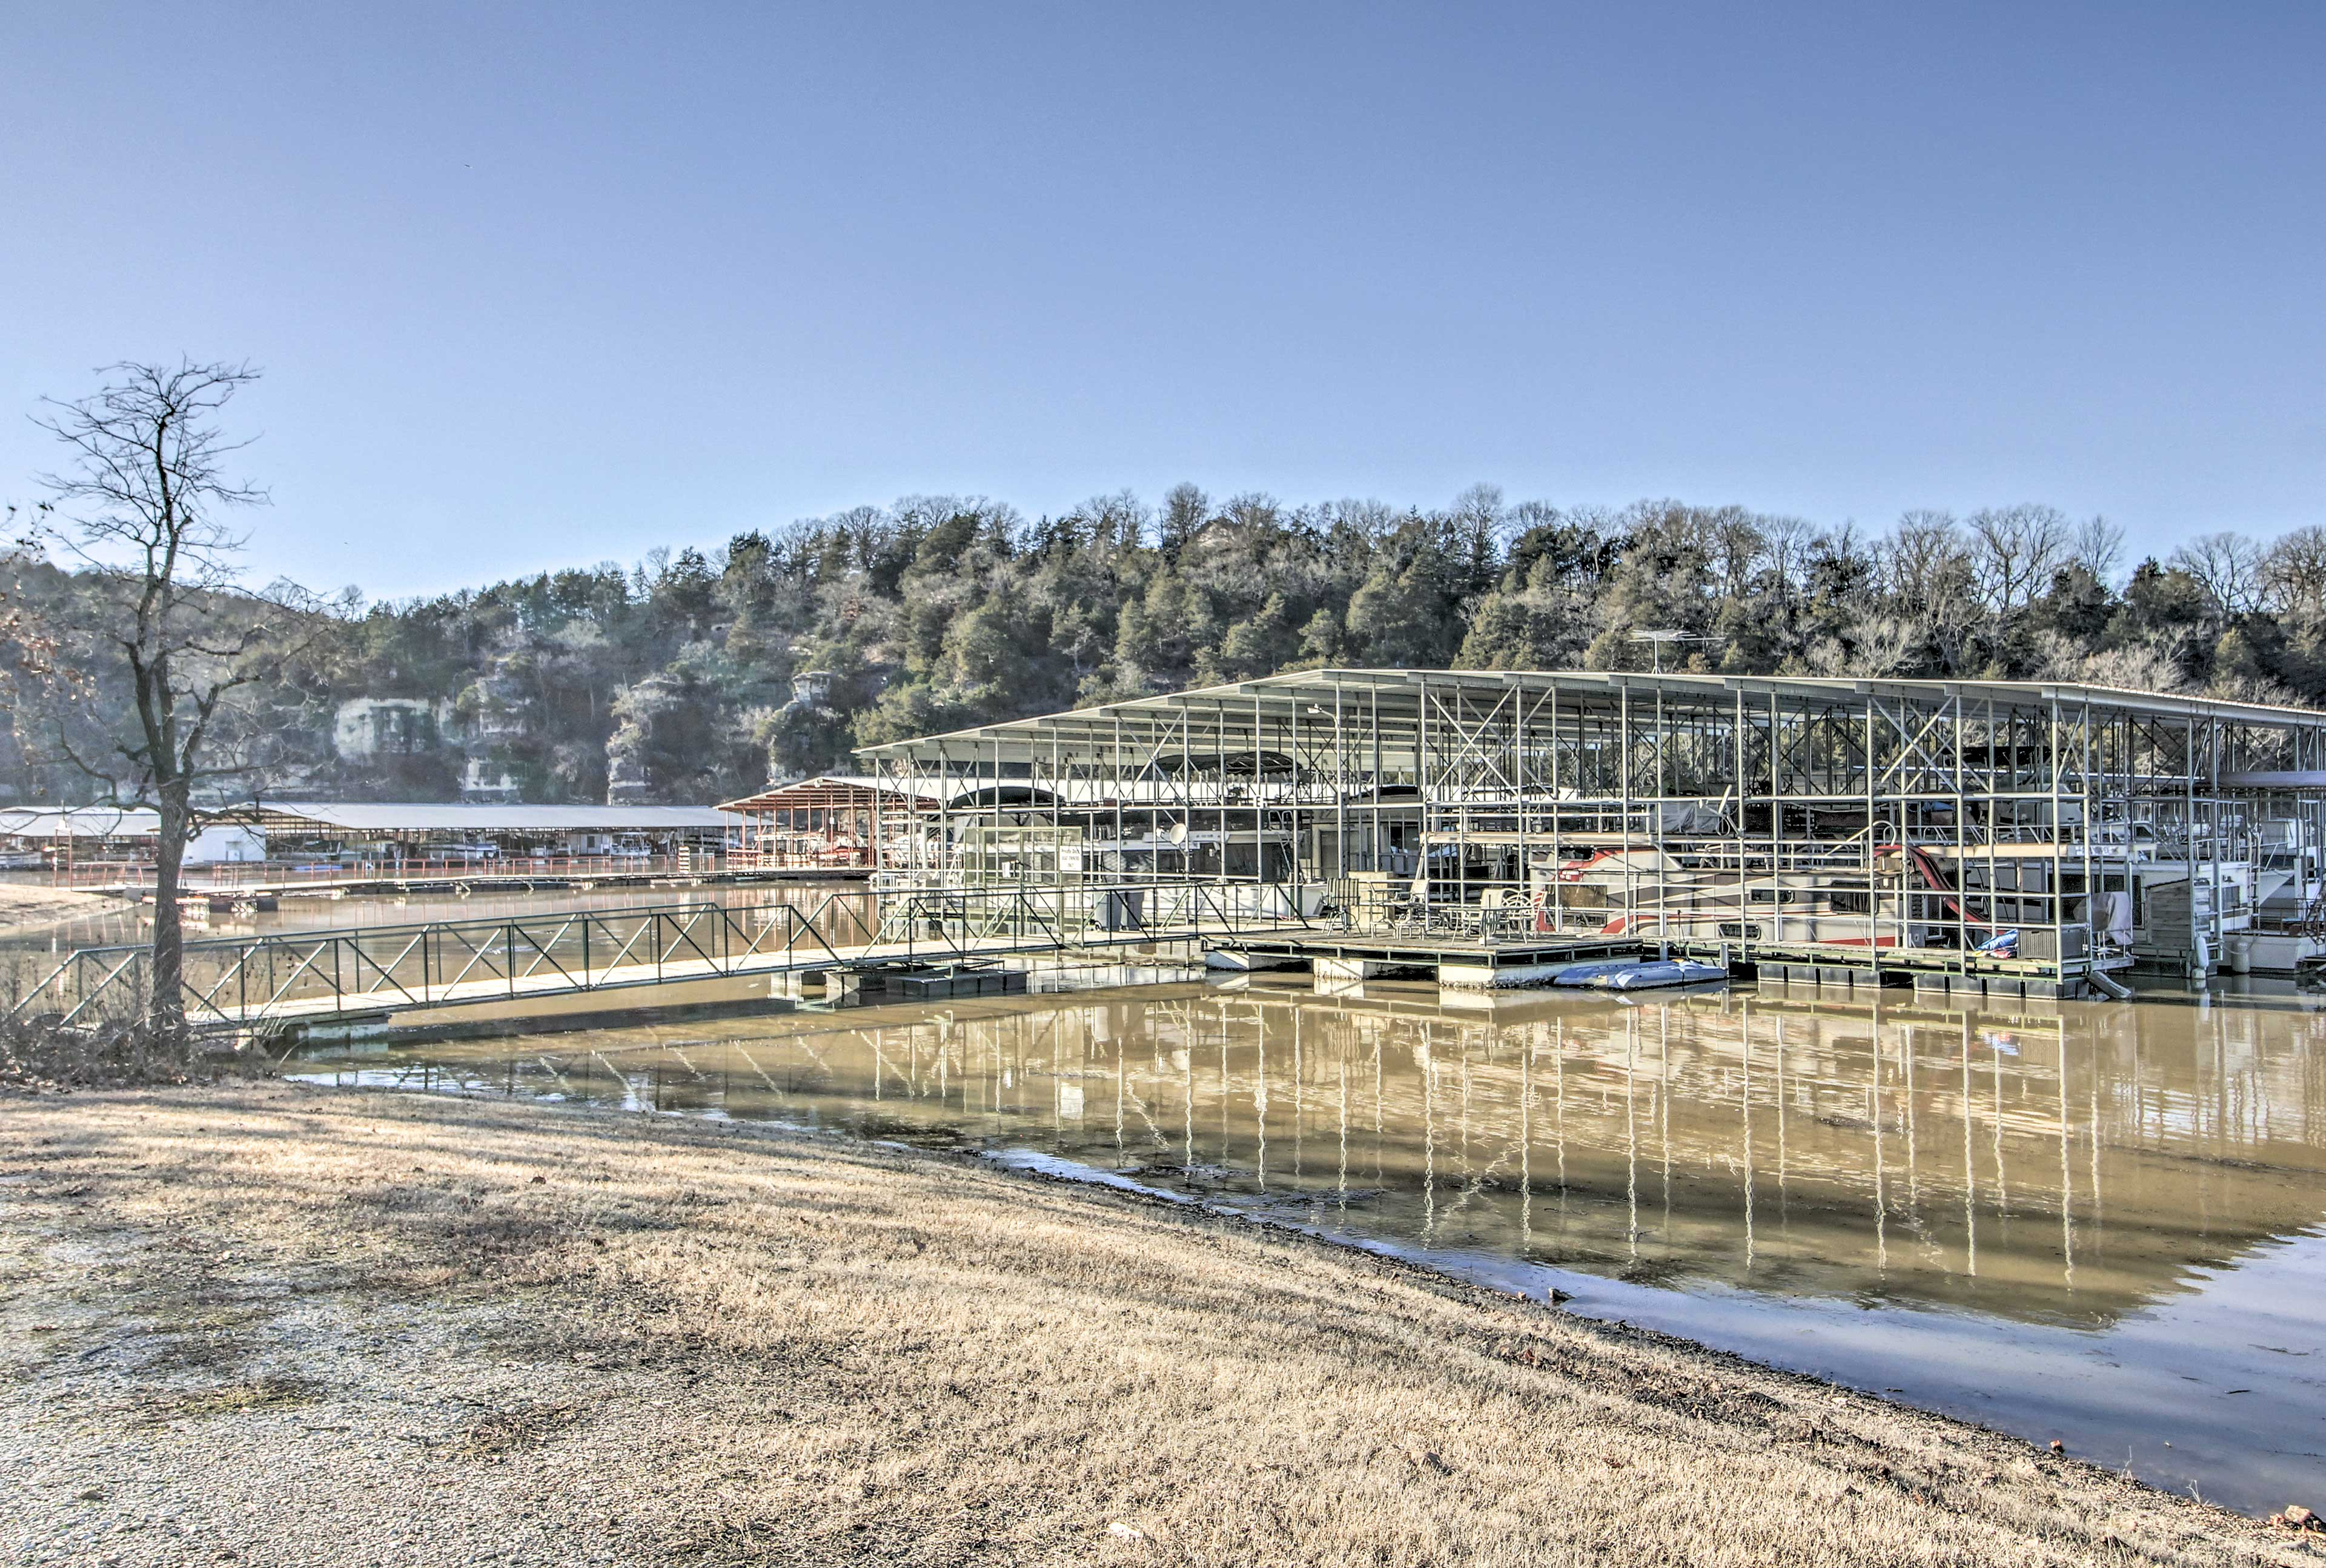 Cricket Creek Marina is down the road; it offers boat rentals and a boat ramp.